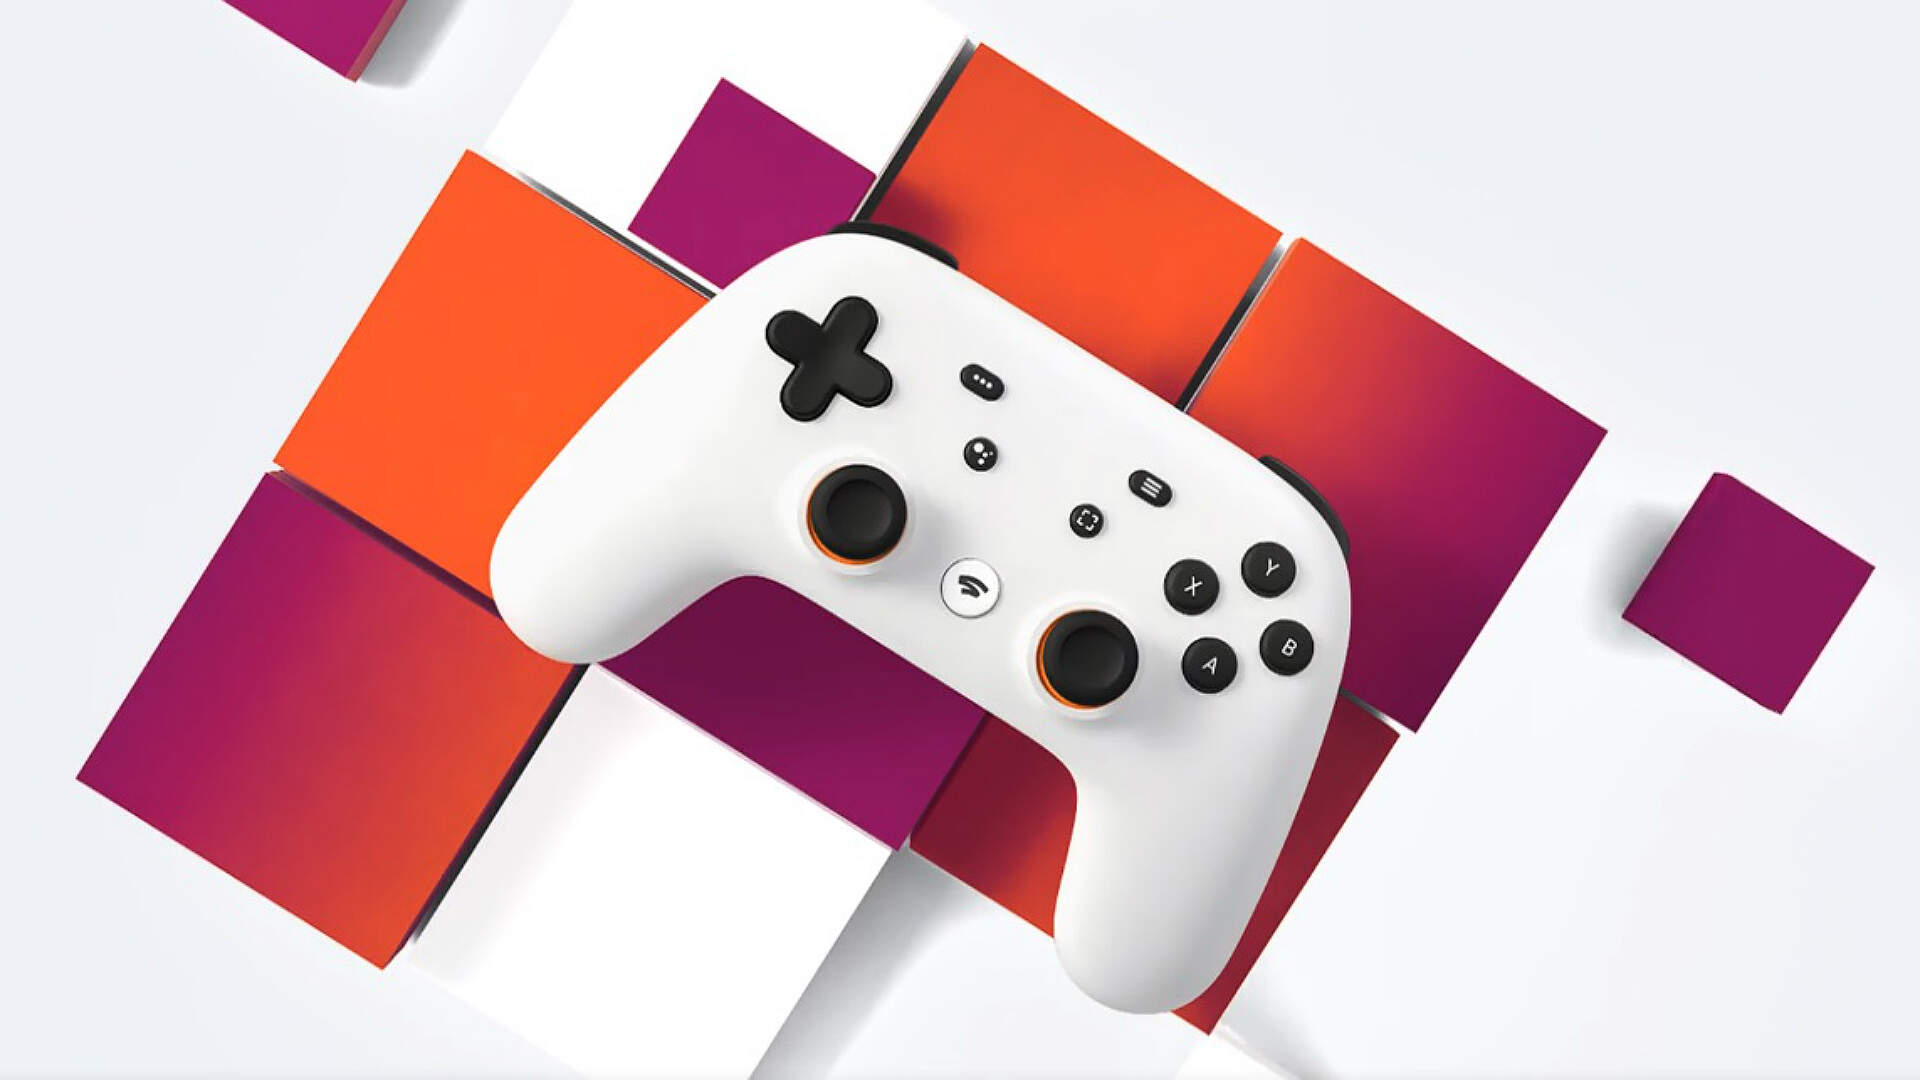 Several Big Google Stadia Features Won't Go Live Until 2020